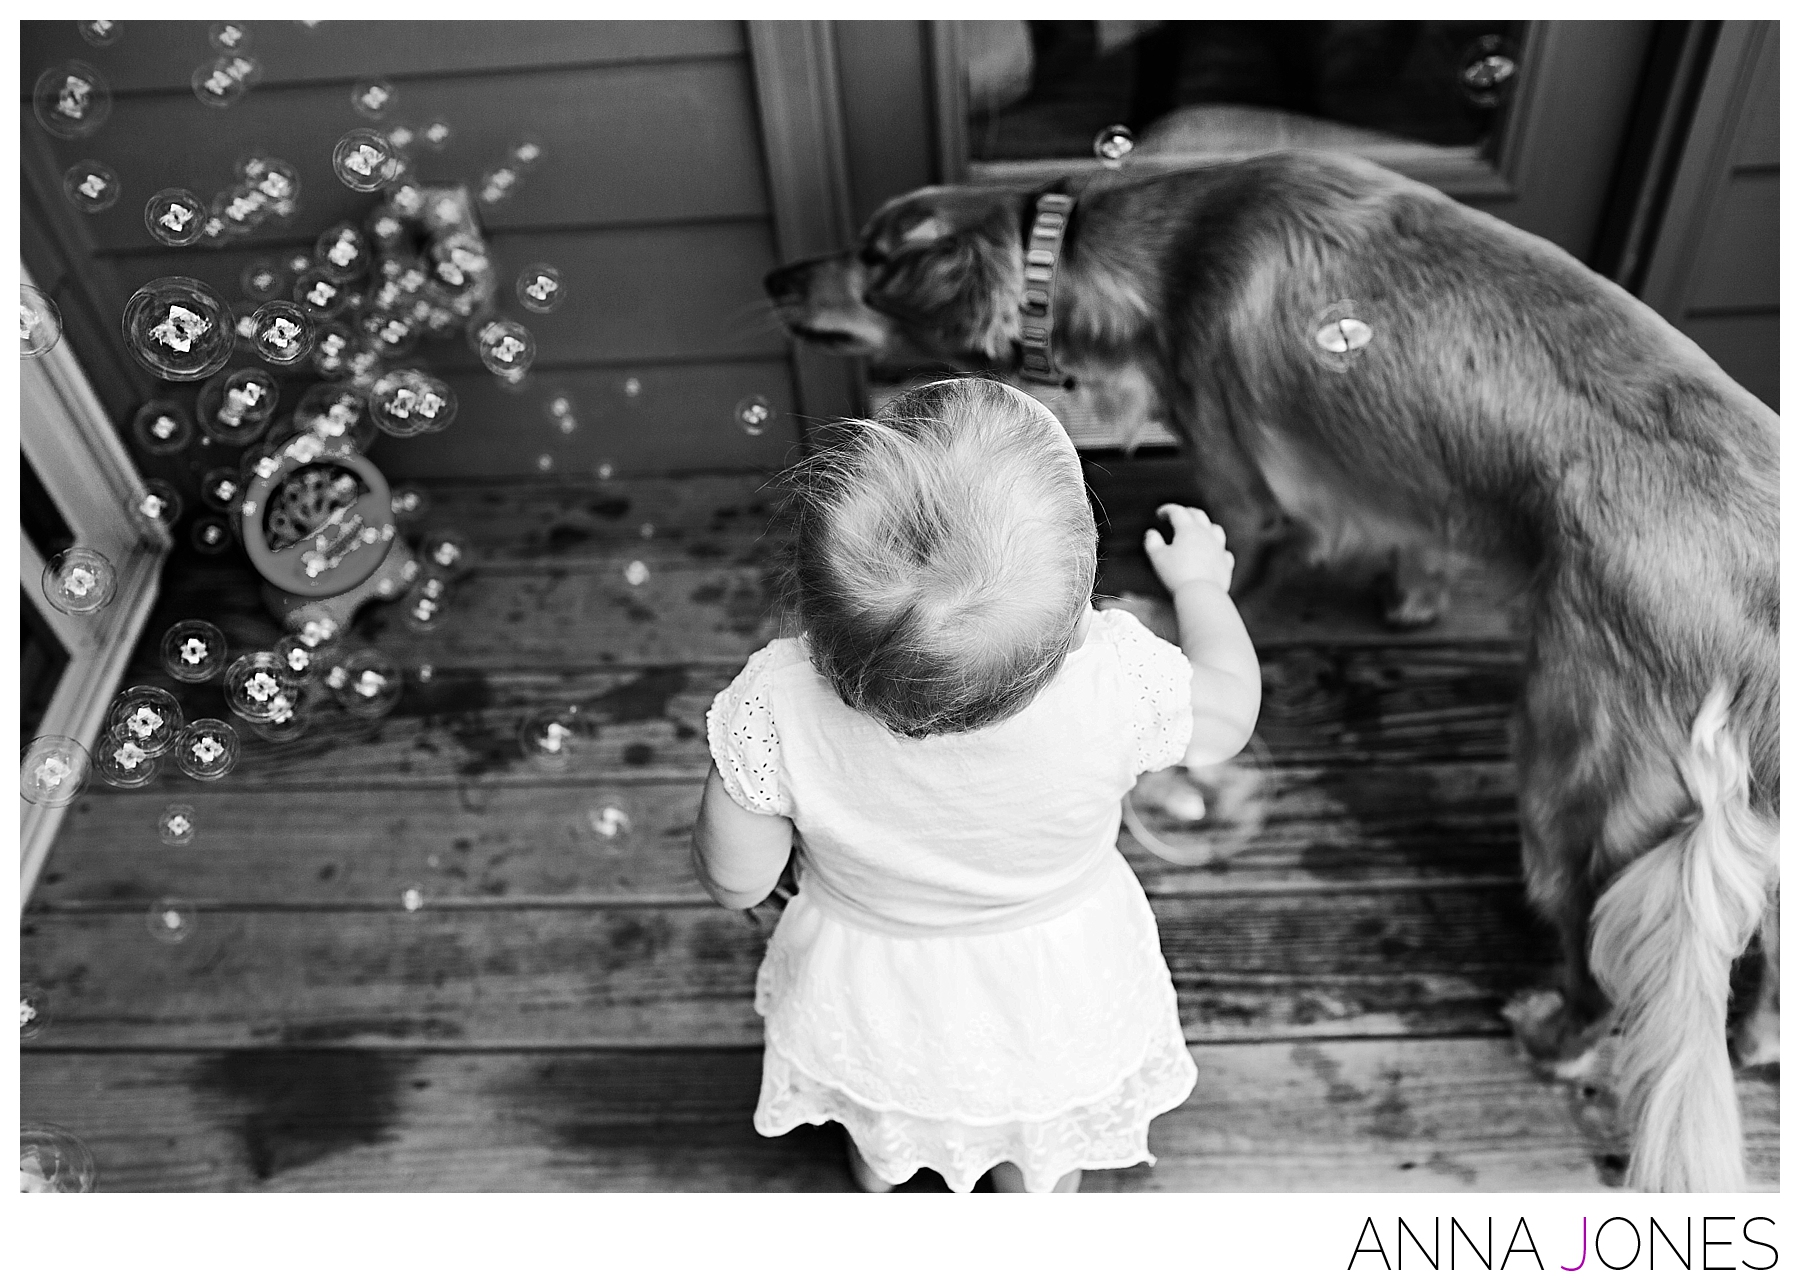 The Osbys by Anna Jones Photography - www.annajon.es